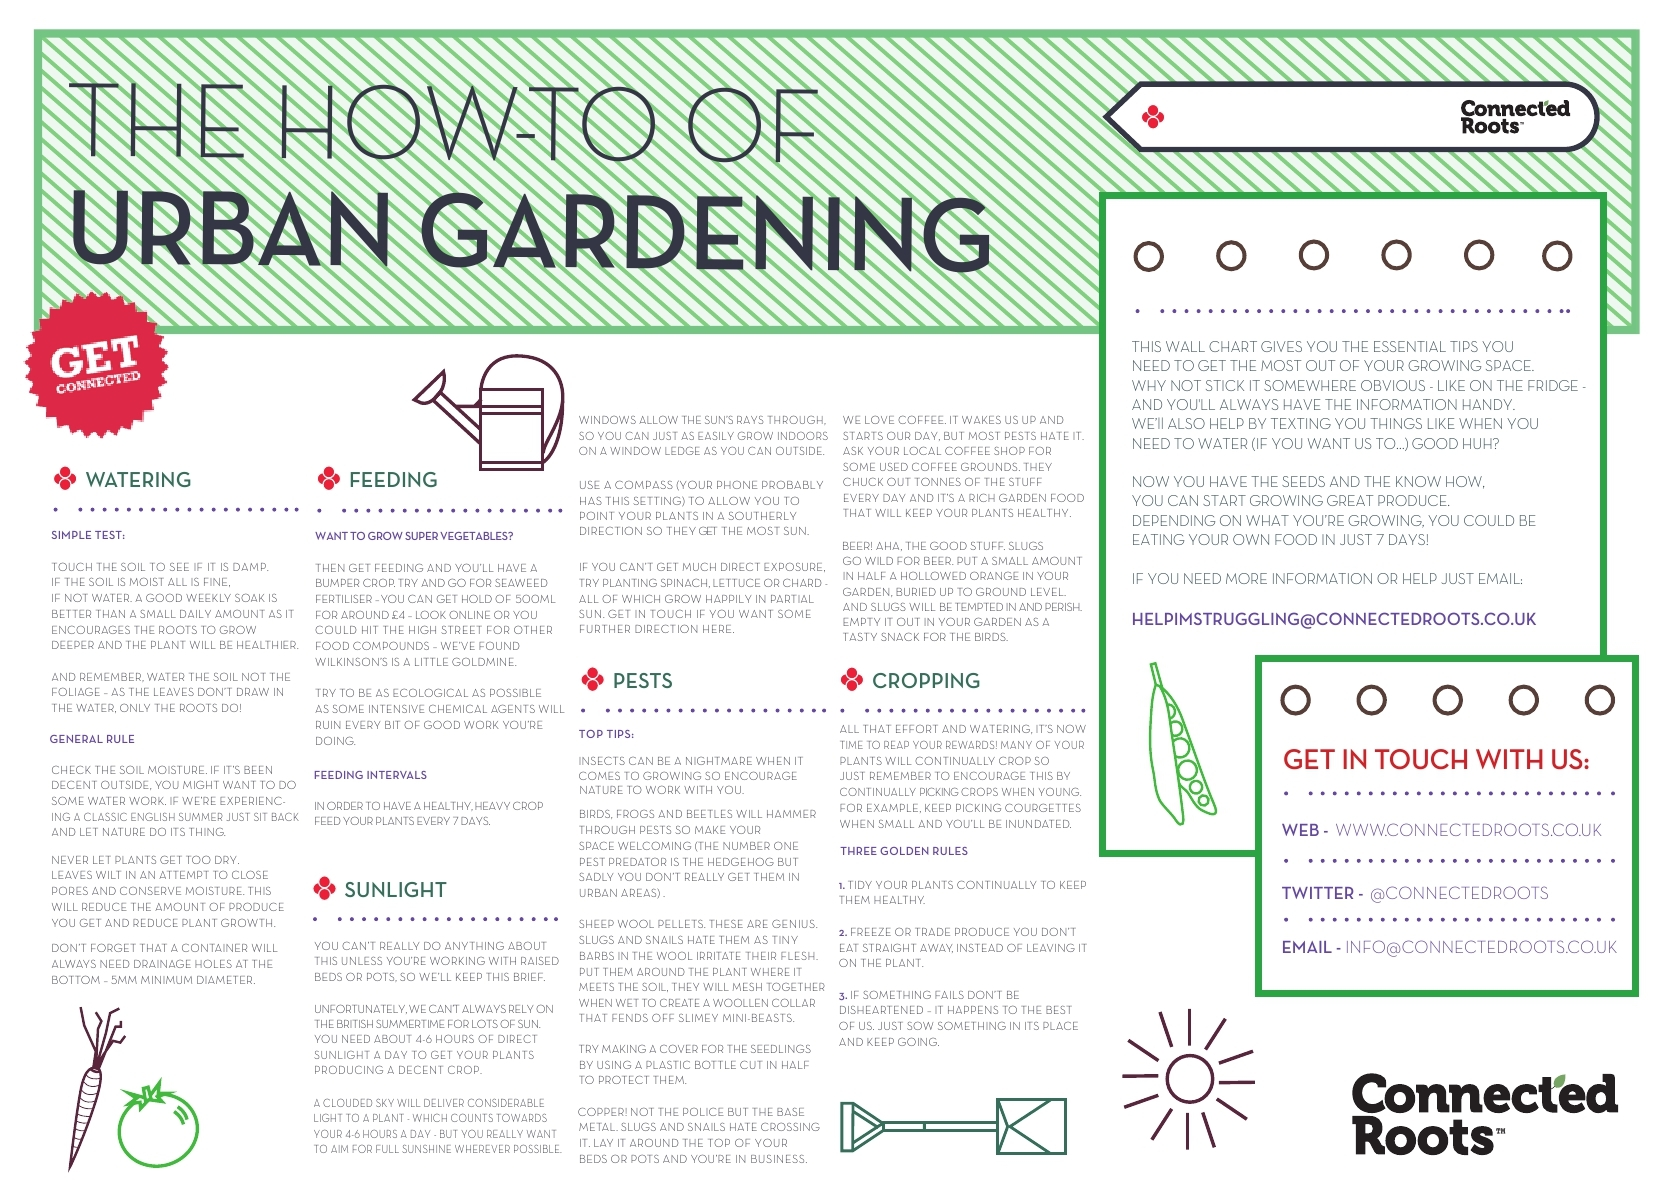 Connected Roots - the how to of urban gardening